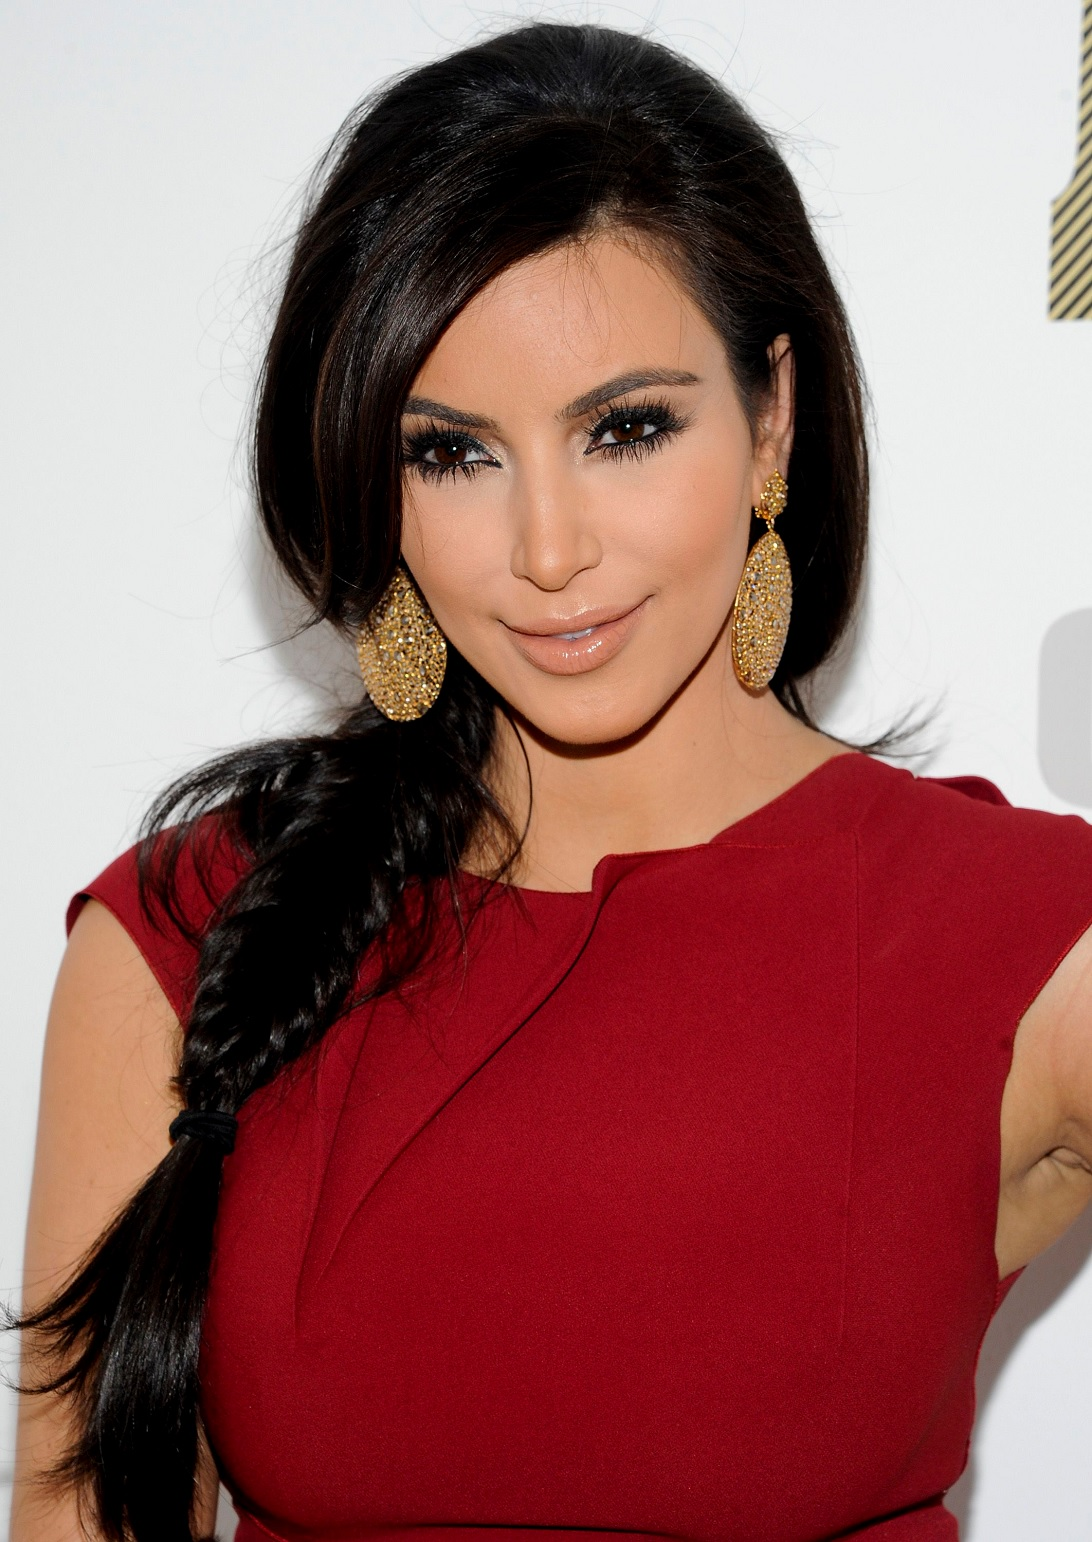 Romantic Valentines Day Makeup Kim Kardashian